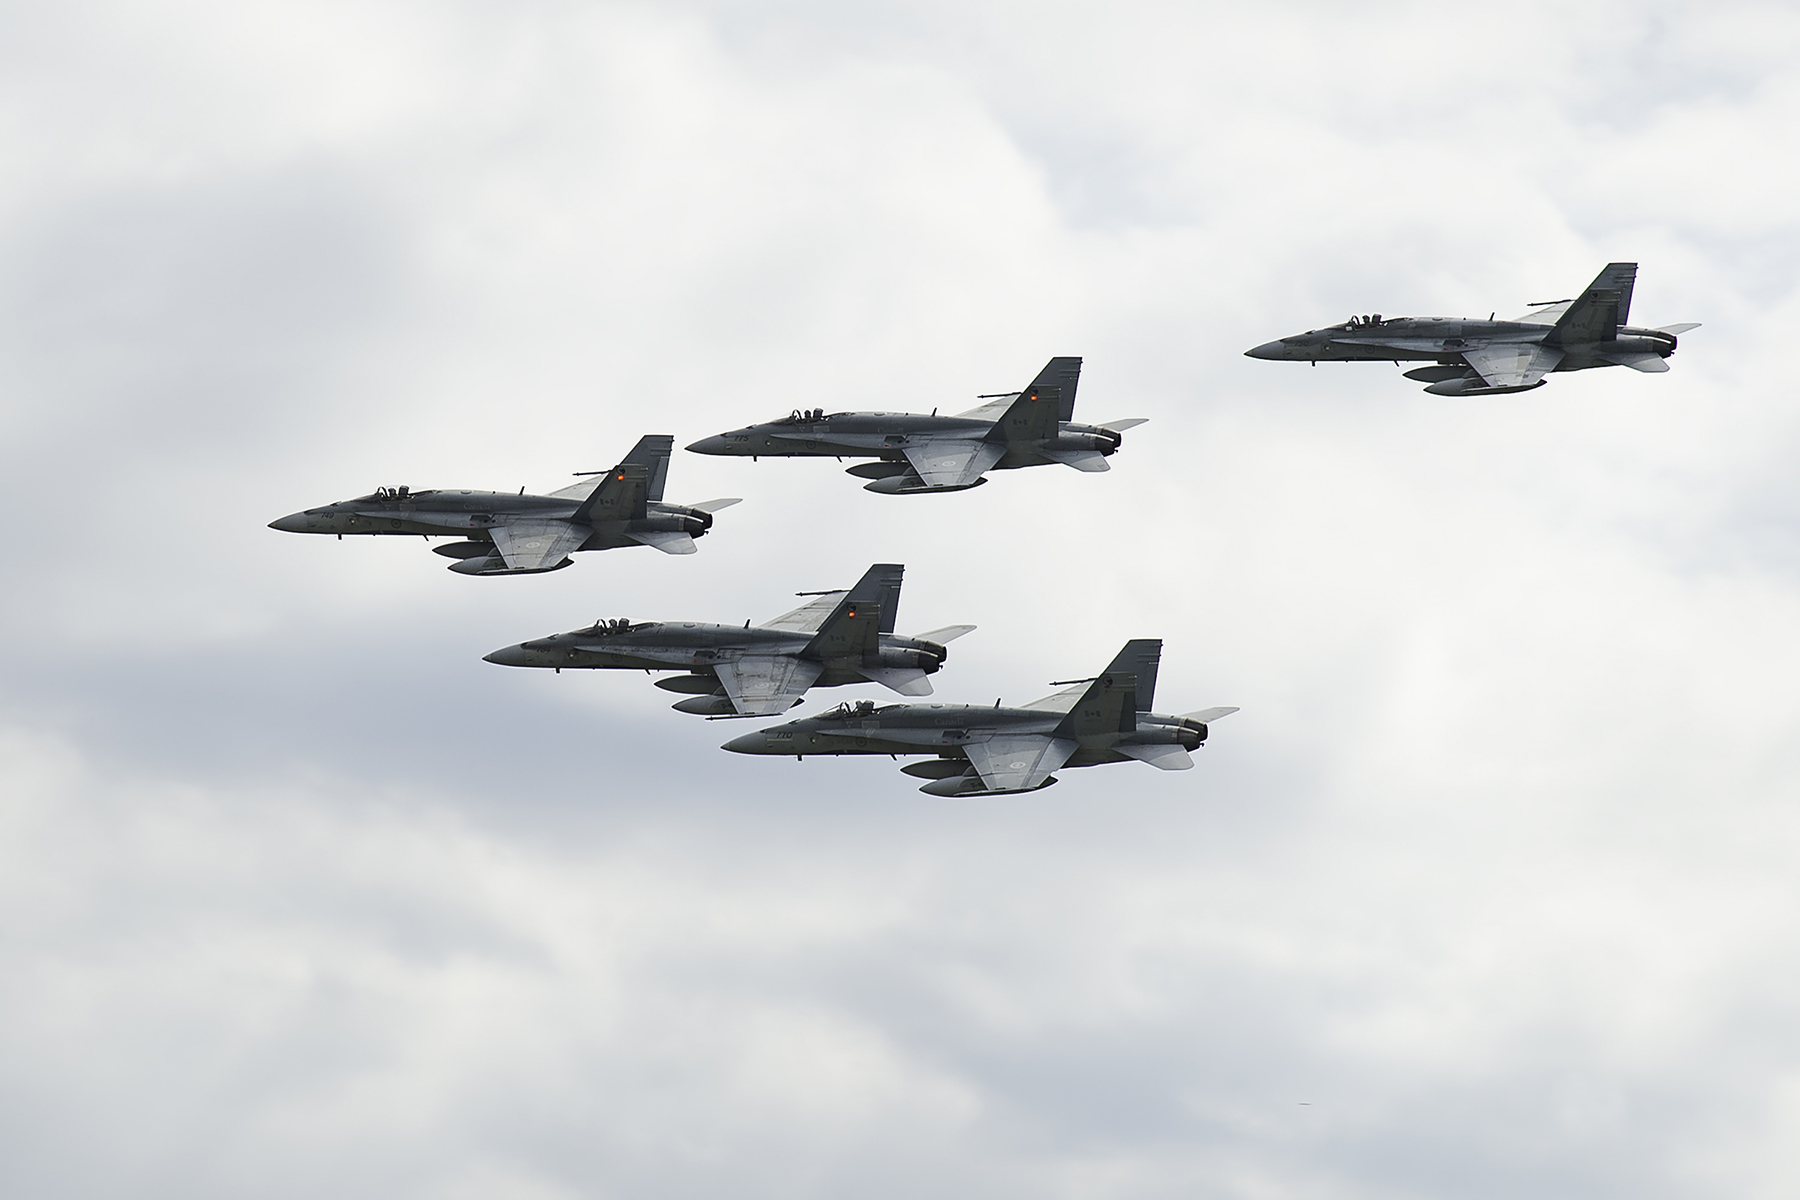 Five ffighter aircraft fly in formation in an overcast sky.